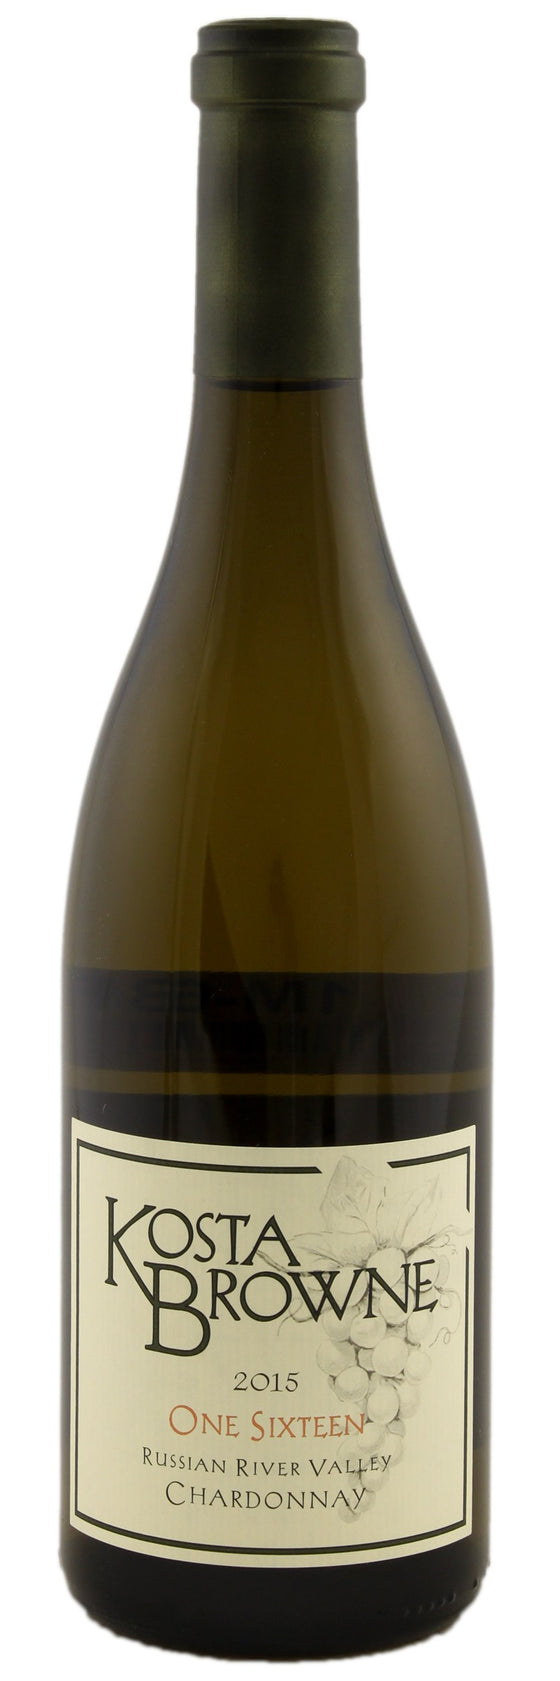 Kosta Browne 'One Sixteen' Chardonnay 2015, Russian River Valley, California